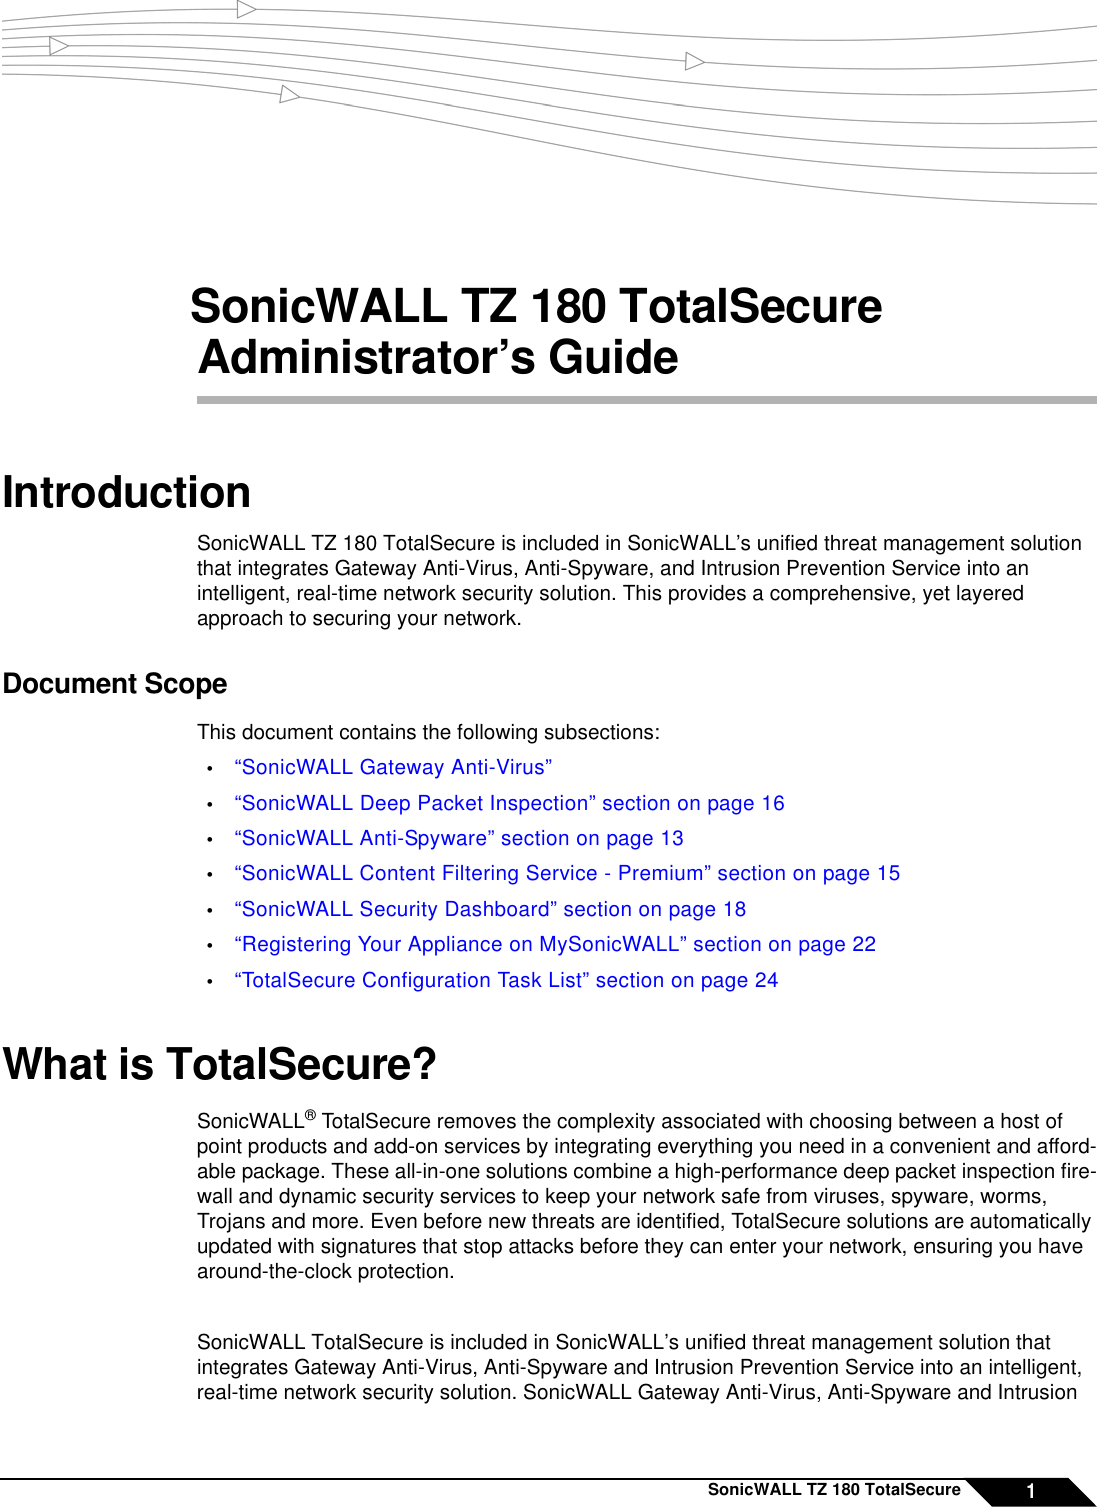 Sonicwall Home Security System Tz 180 Users Manual